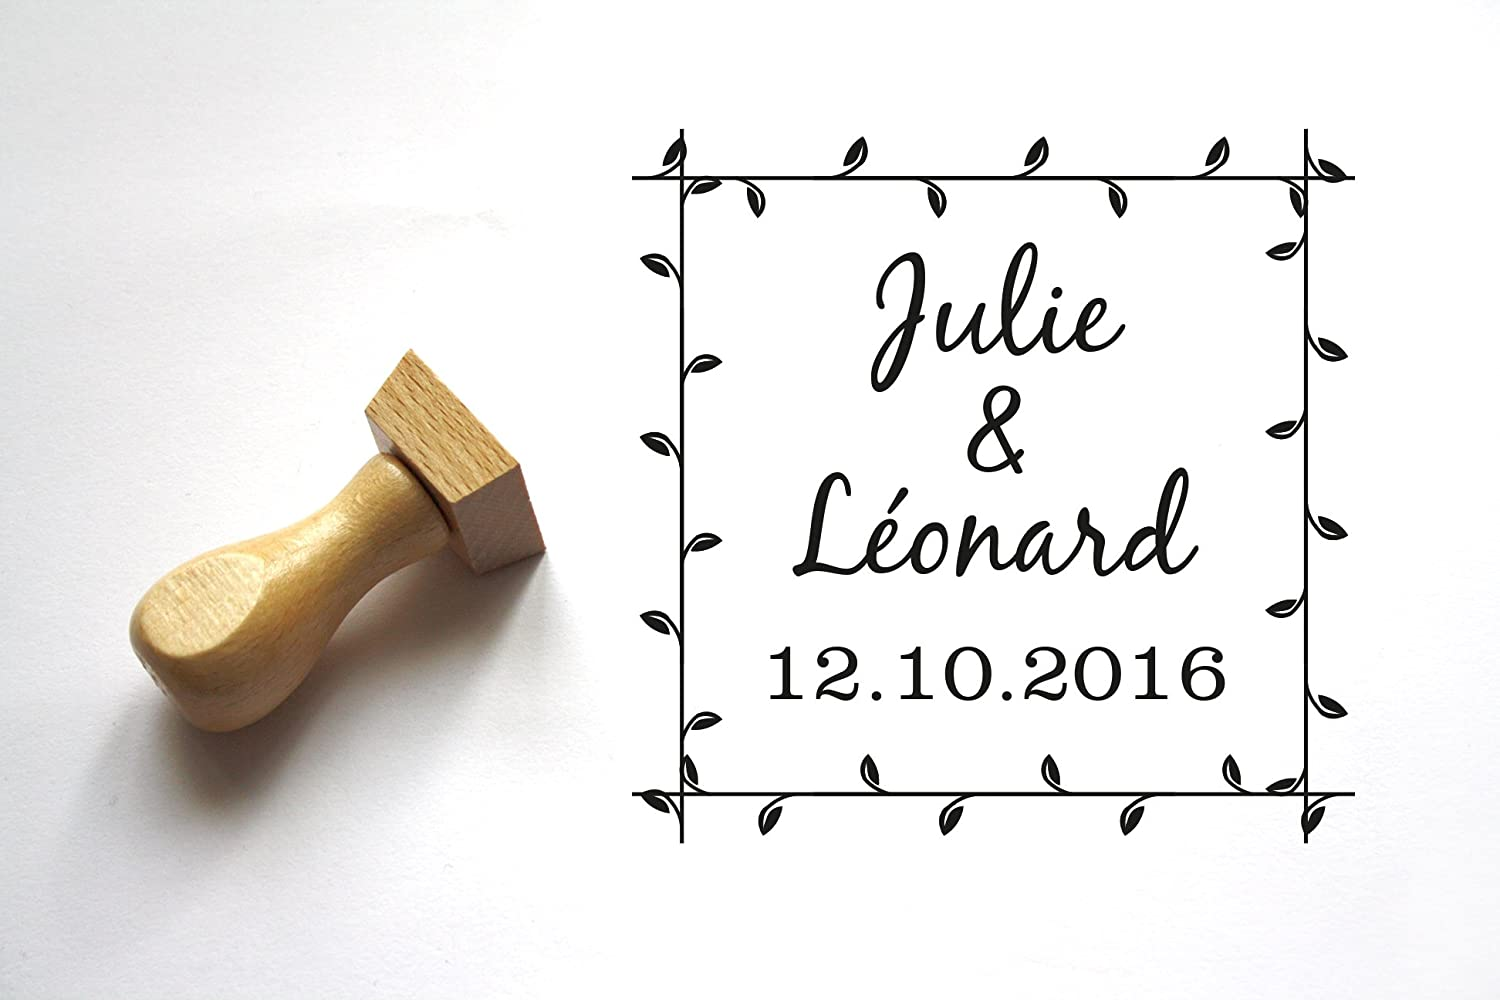 Wedding stamp personalized, flowers, leaves pattern, custom countryside style with your names and date, square shape.